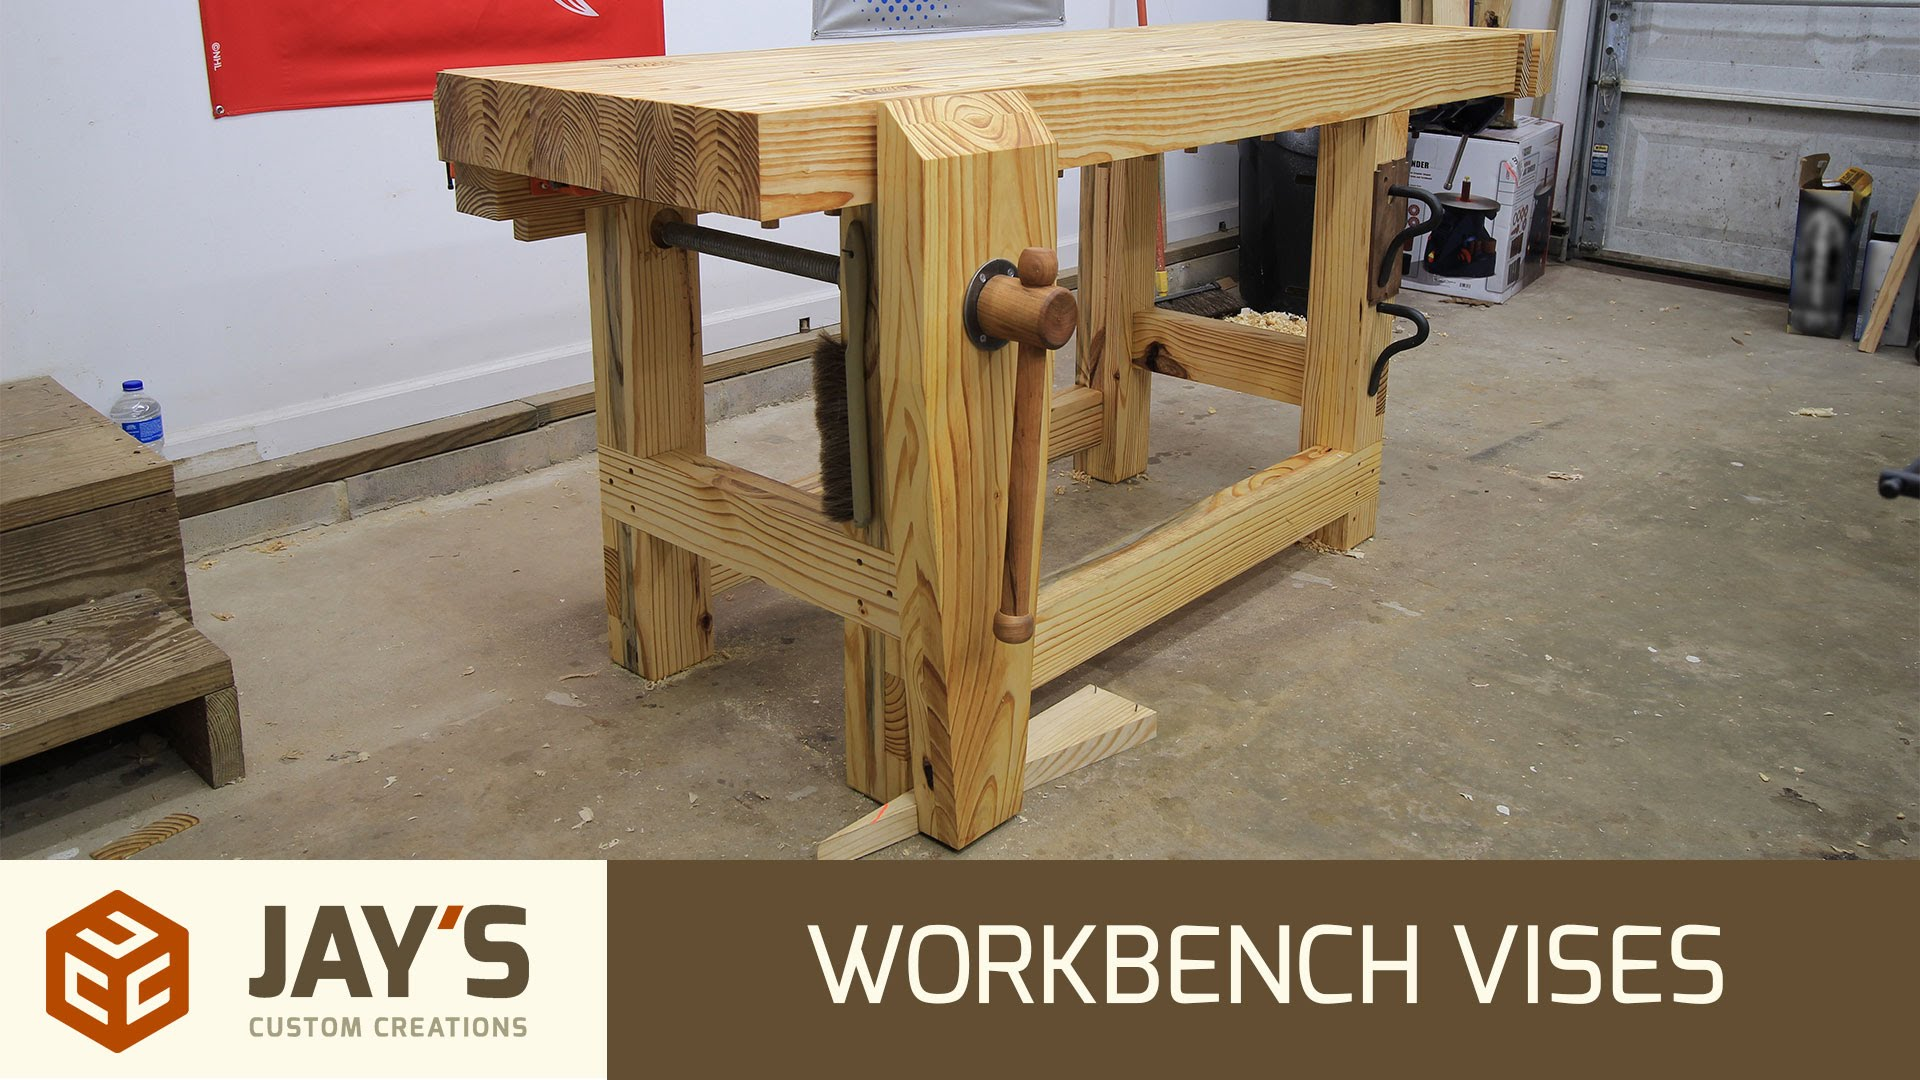 Astonishing Workbench Vises Jays Custom Creations Pabps2019 Chair Design Images Pabps2019Com